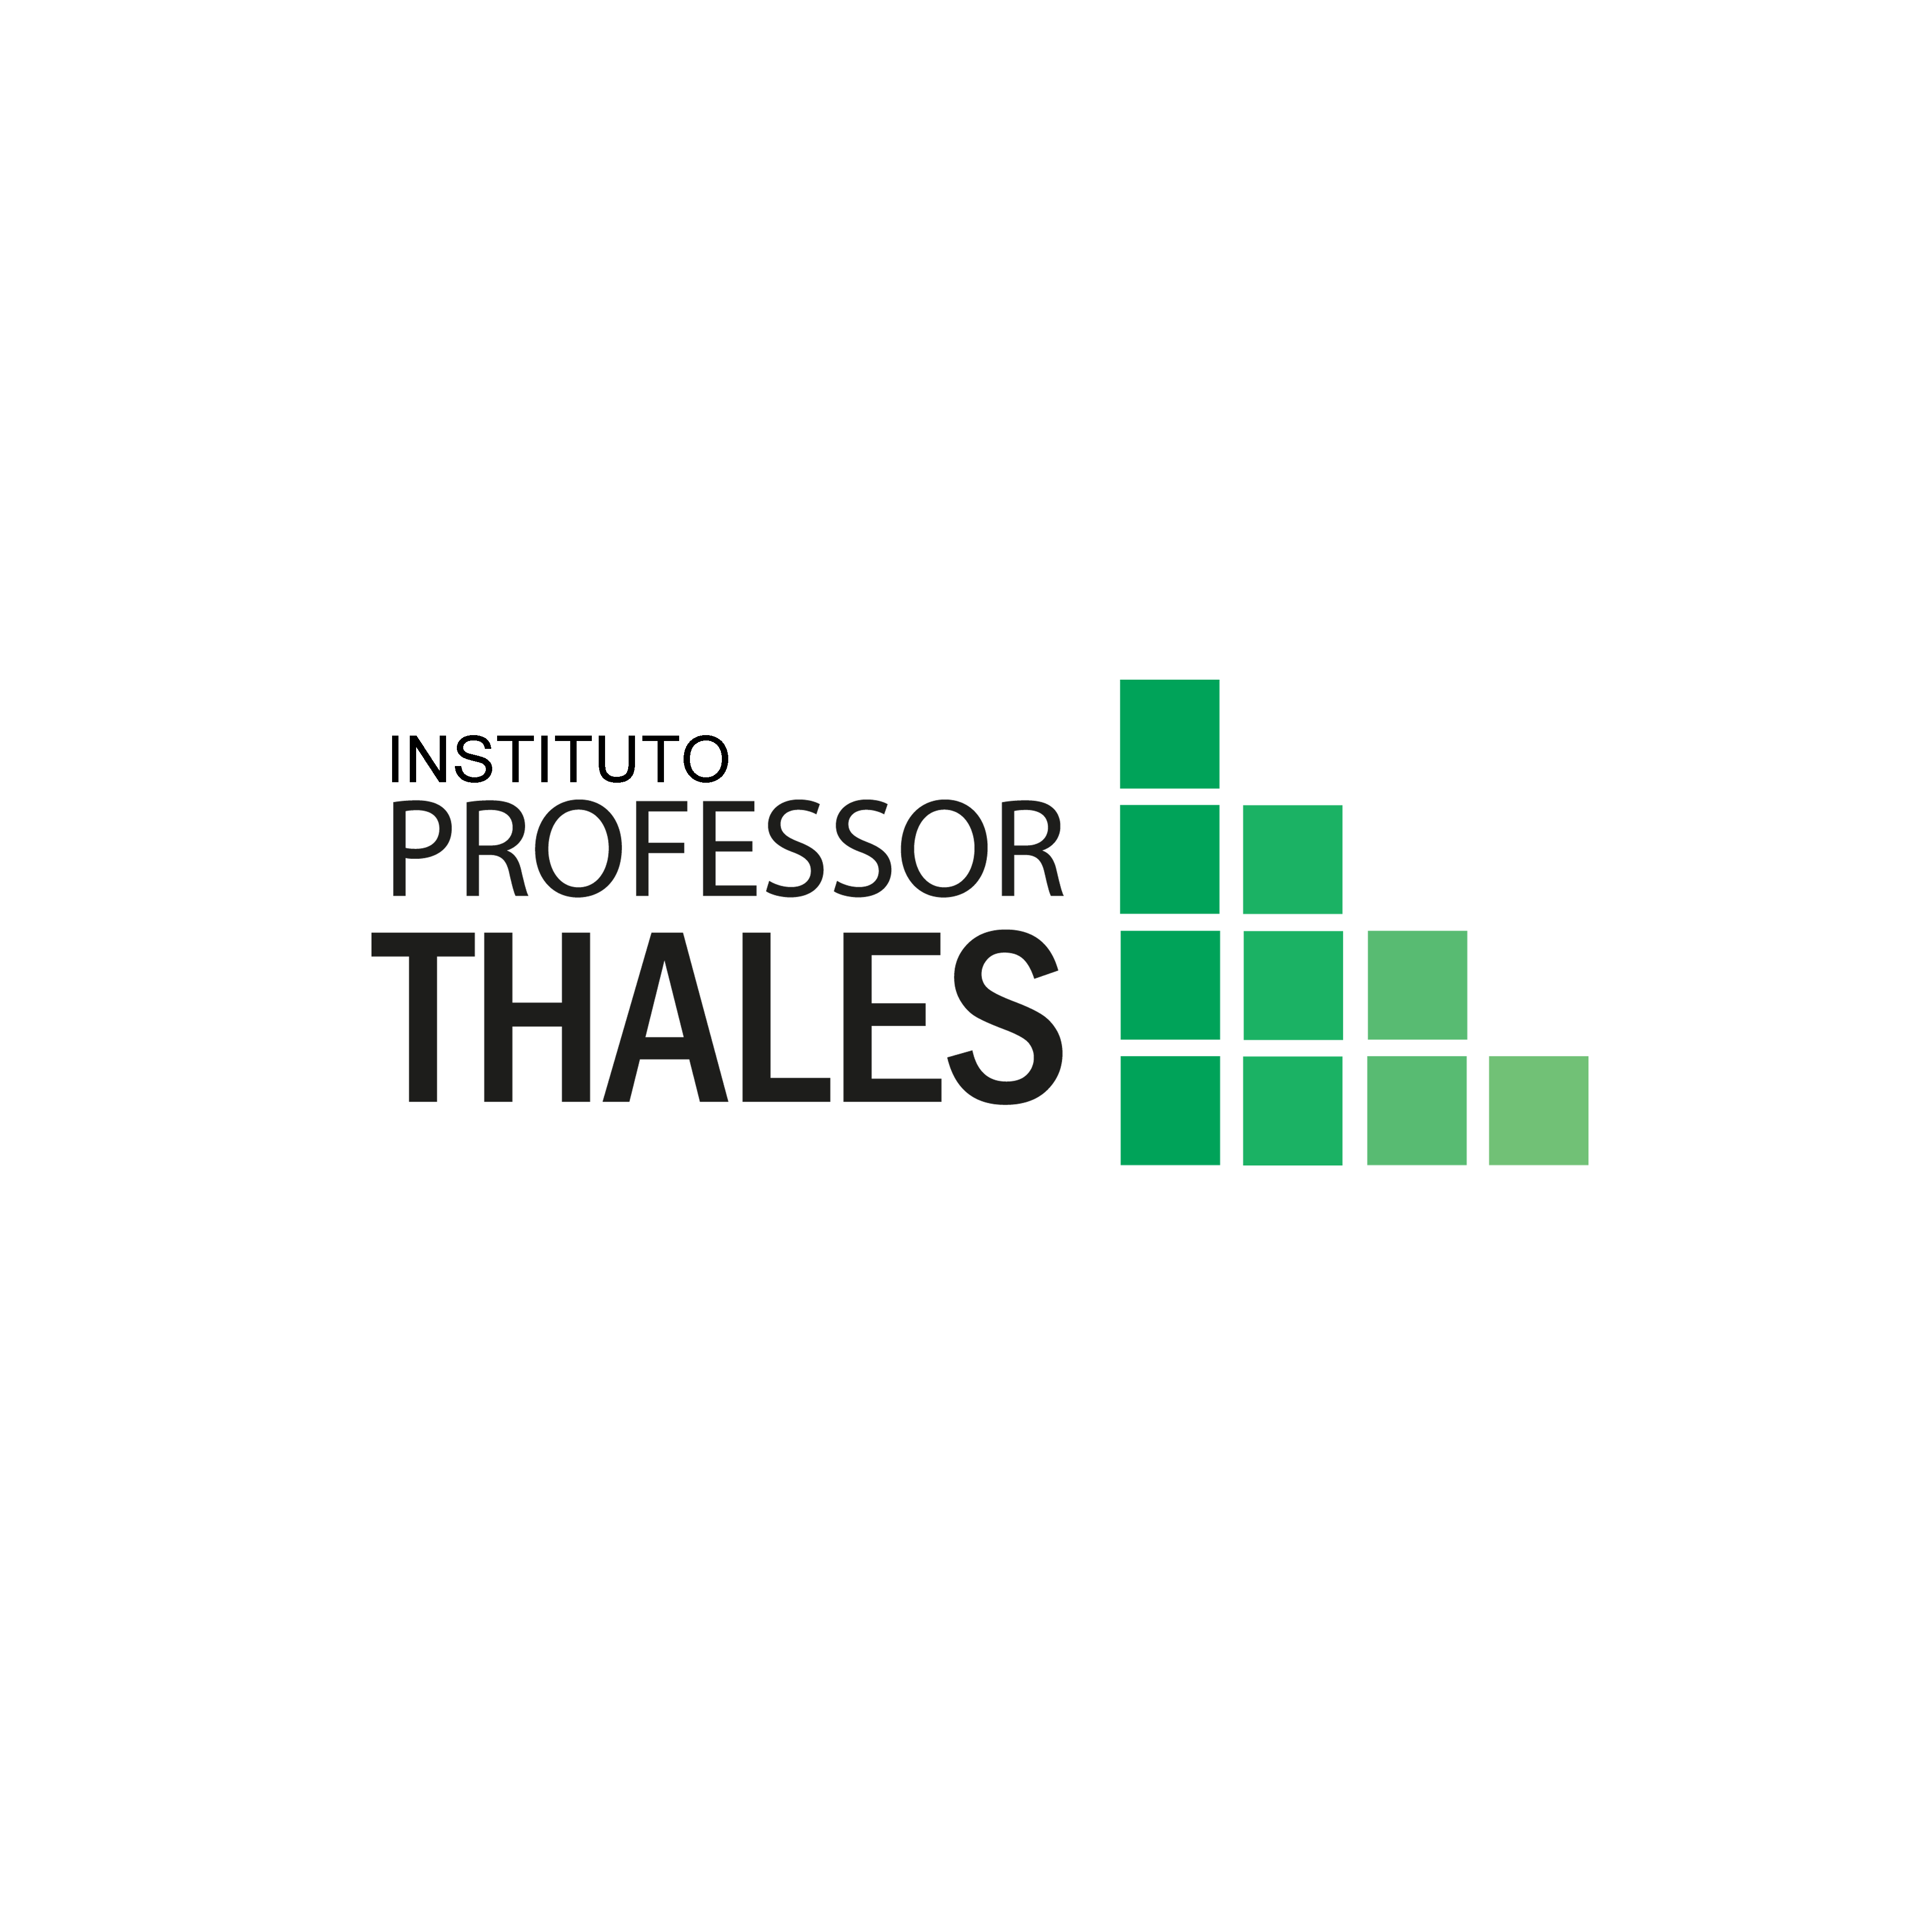 Instituto Professor Thales